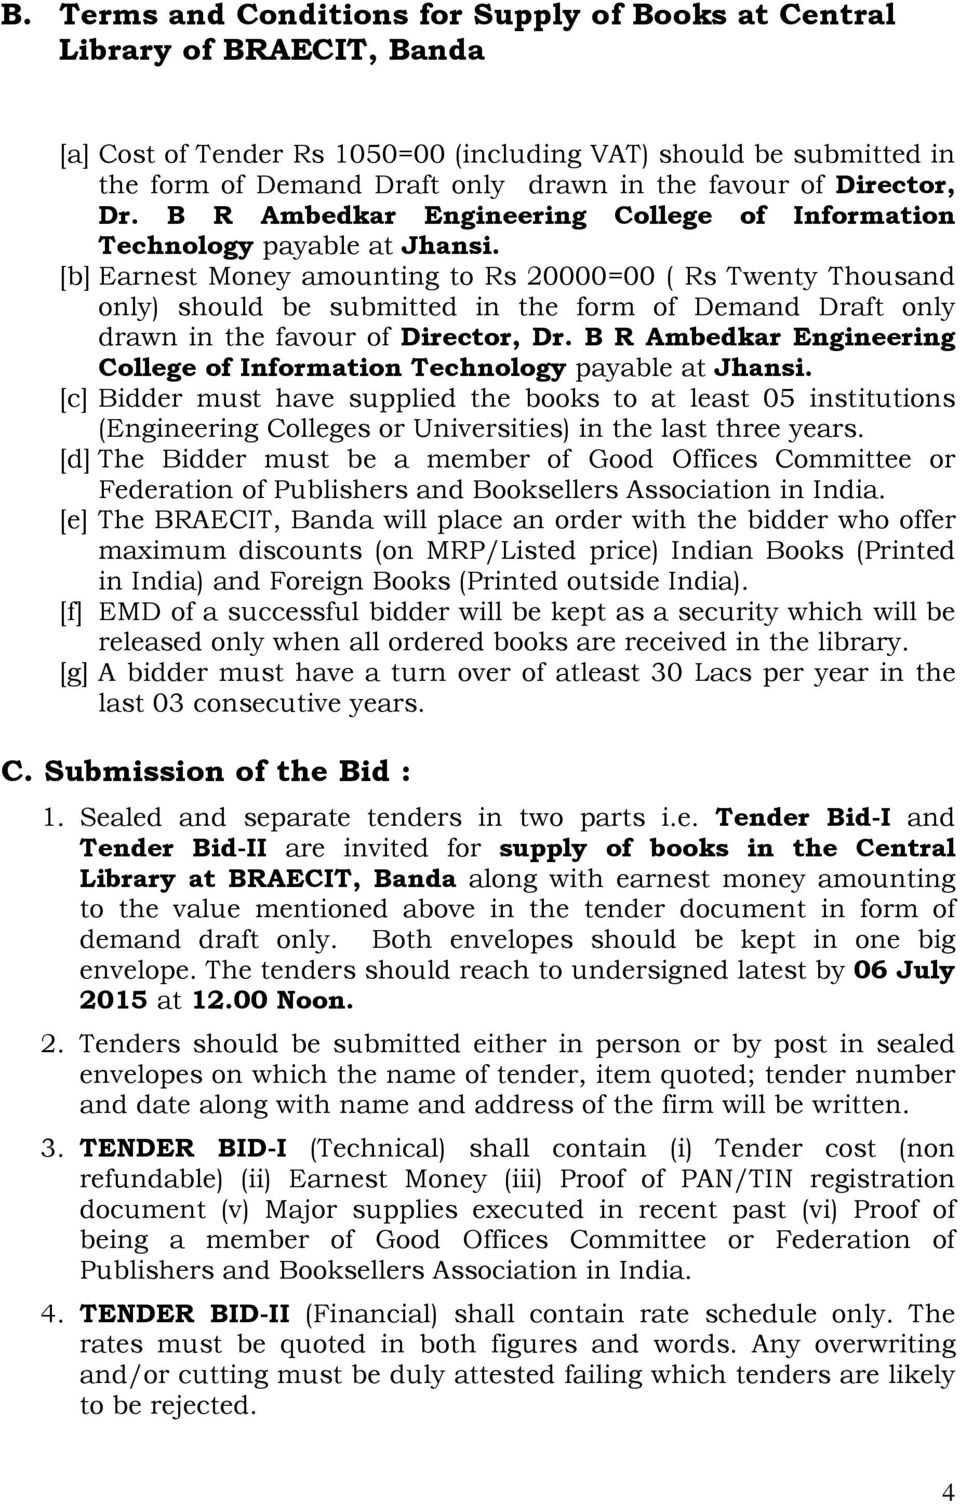 [b] Earnest Money amounting to Rs 20000=00 ( Rs Twenty Thousand only) should be submitted in the form of Demand Draft only drawn in the favour  [c] Bidder must have supplied the books to at least 05